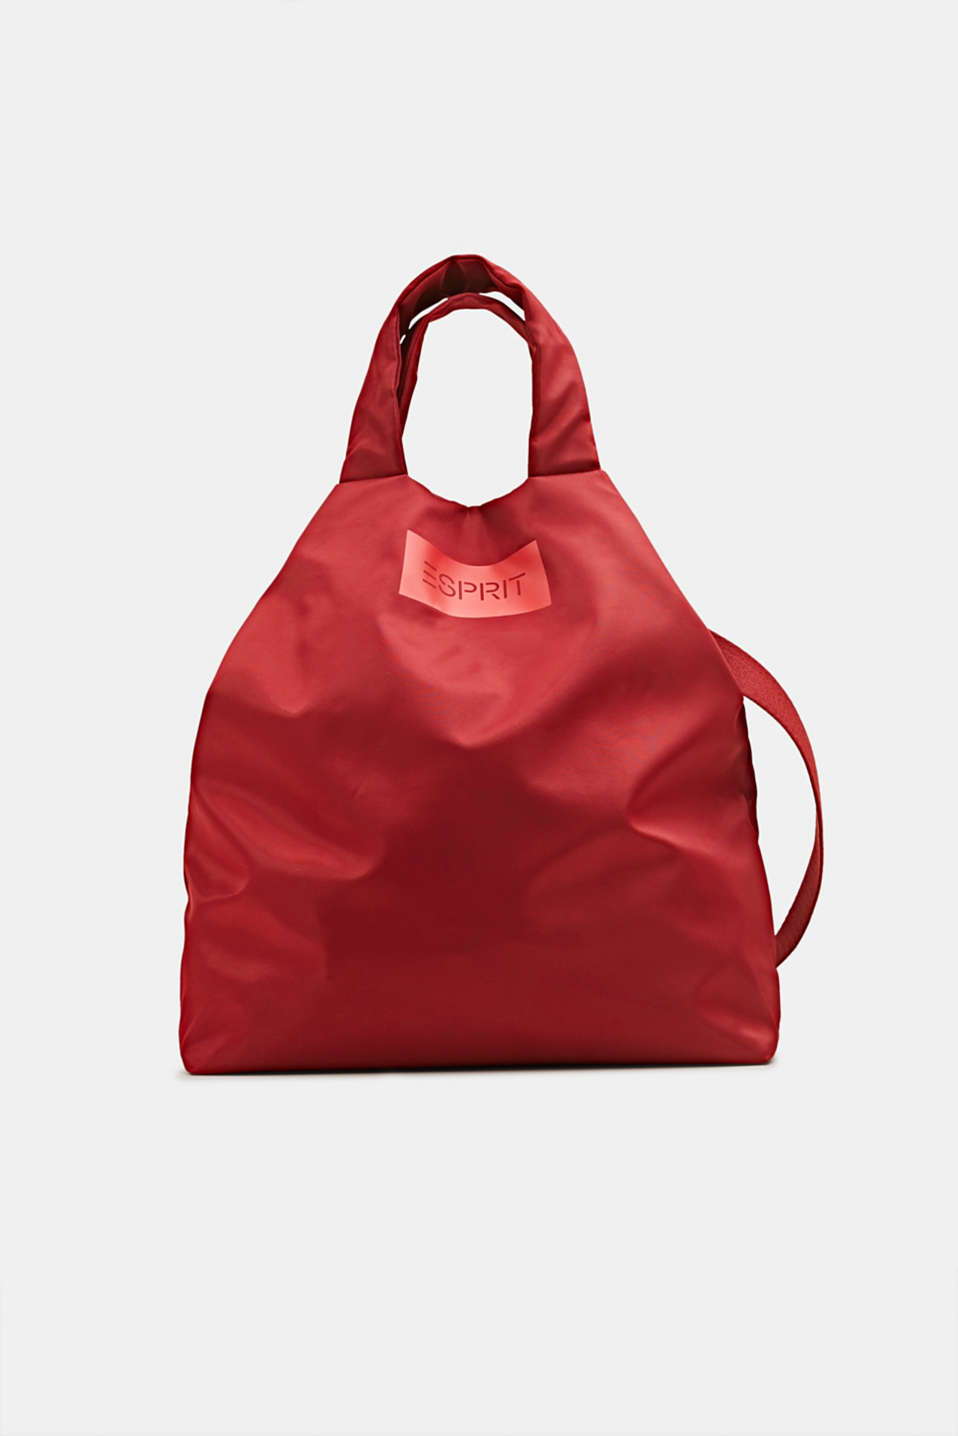 Esprit - Nylon bag with a logo, can be worn in two different ways